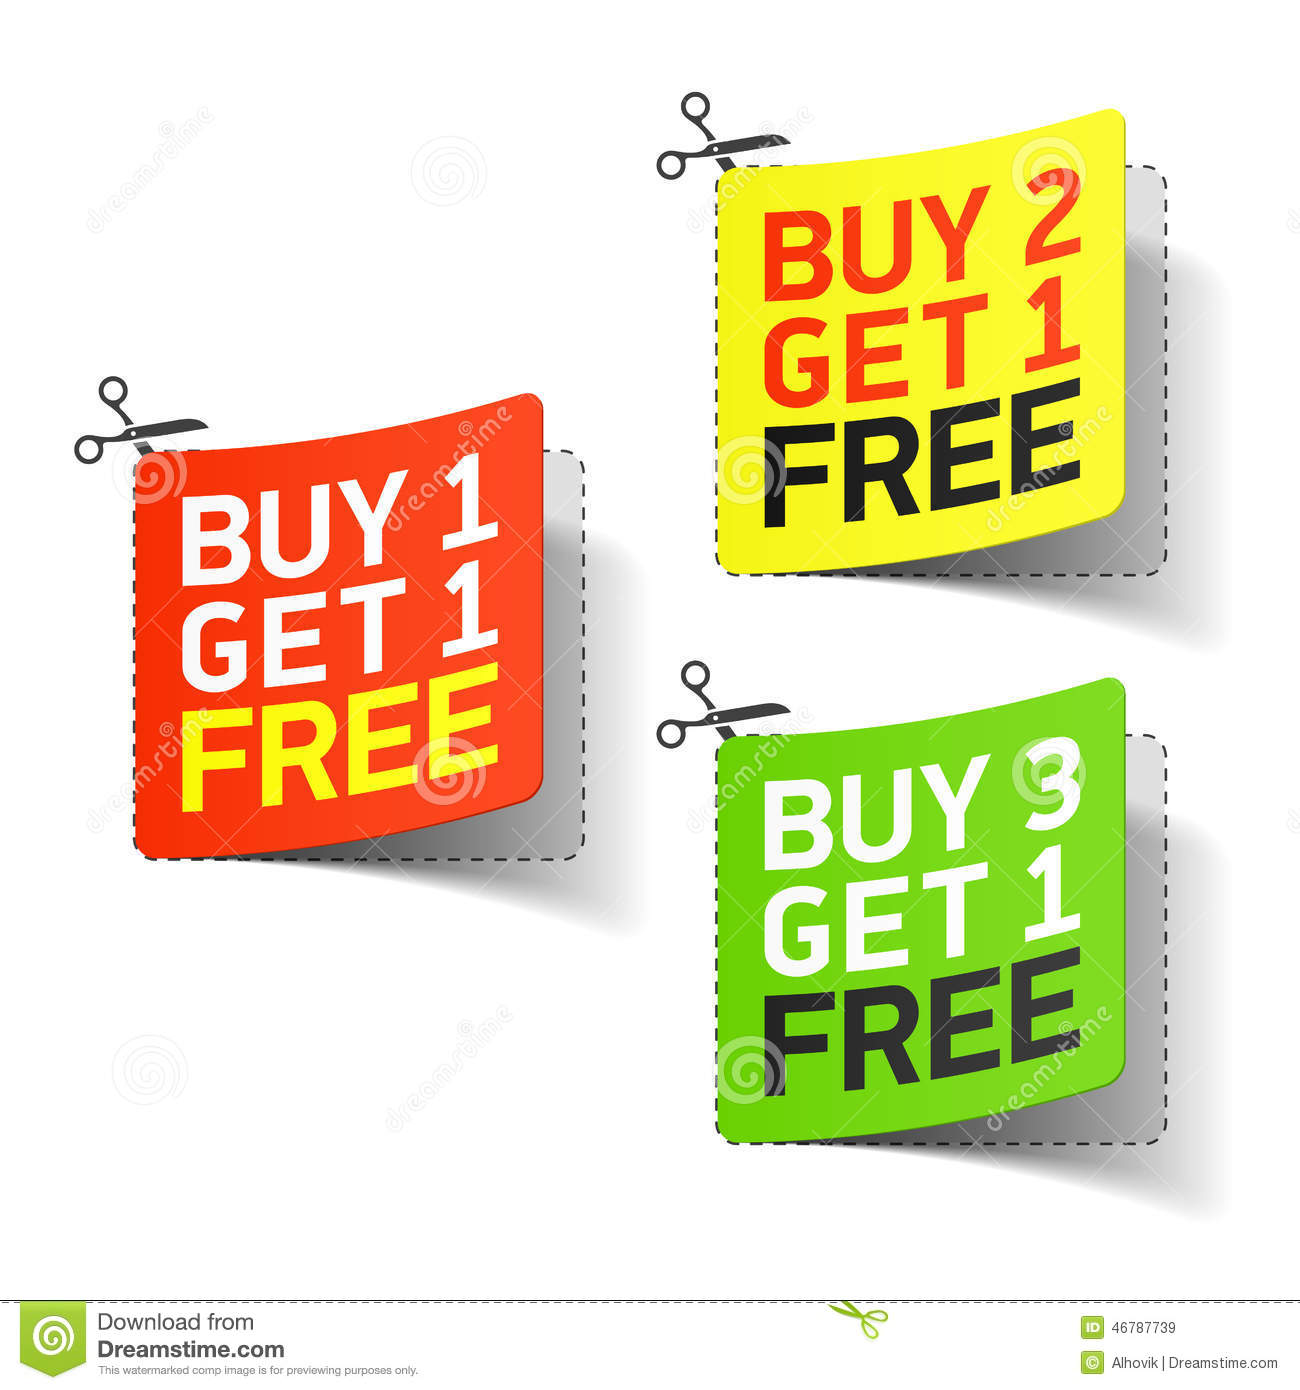 Buy: Buy 1 Get 1 Free Promotional Coupon Stock Vector